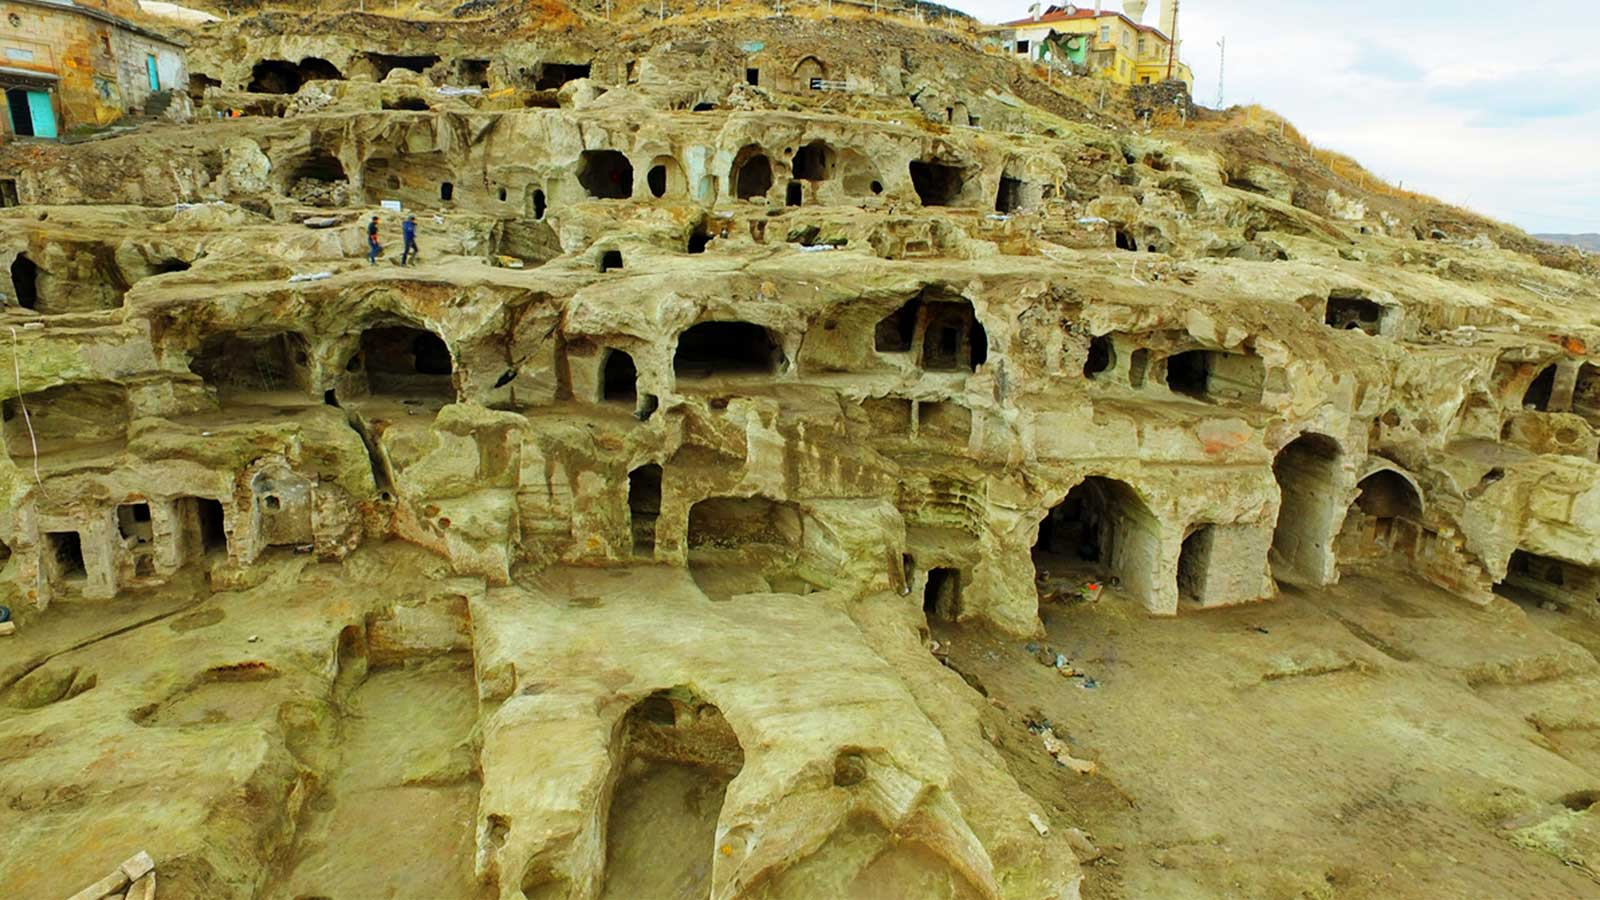 Vast Underground City Found Nevsehir